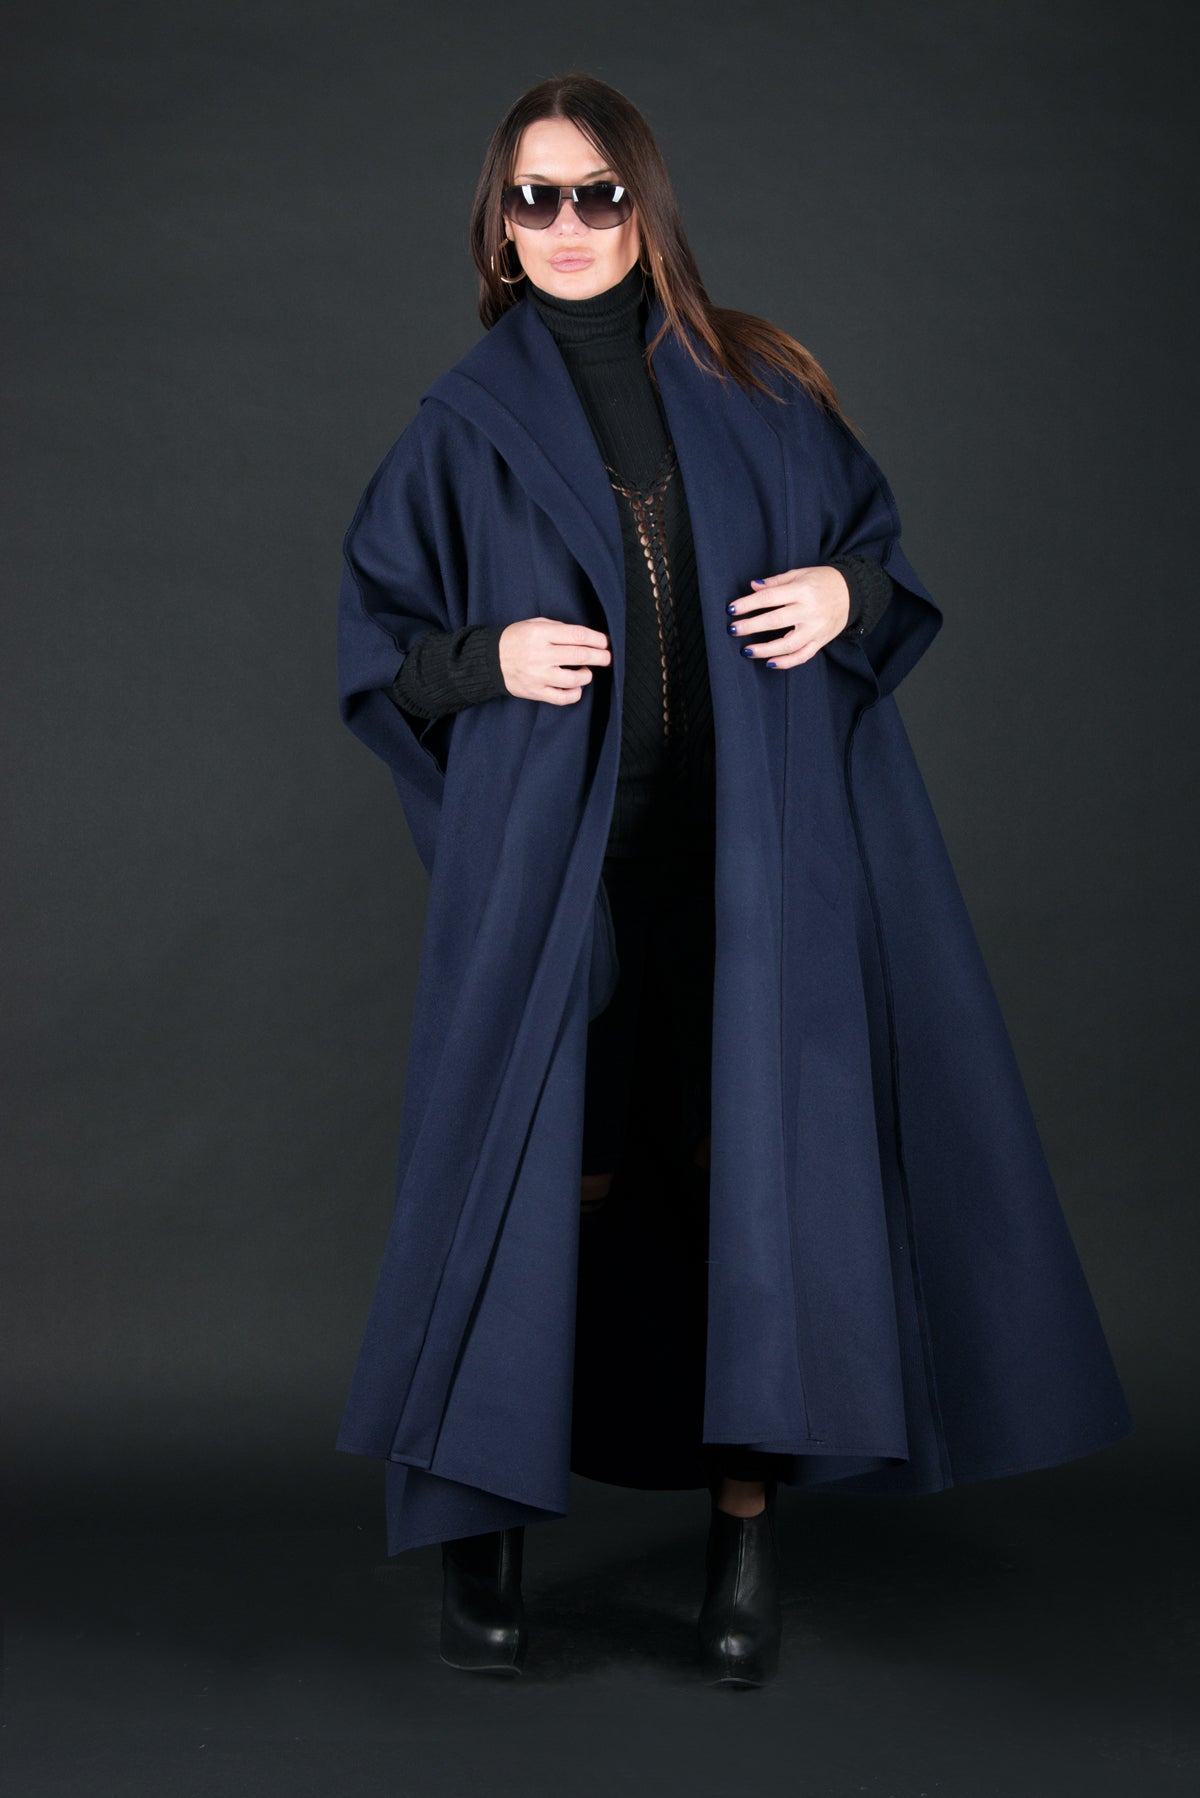 Sleeveless Blue Wool Coat, Cashmere Sleeveless Cloak